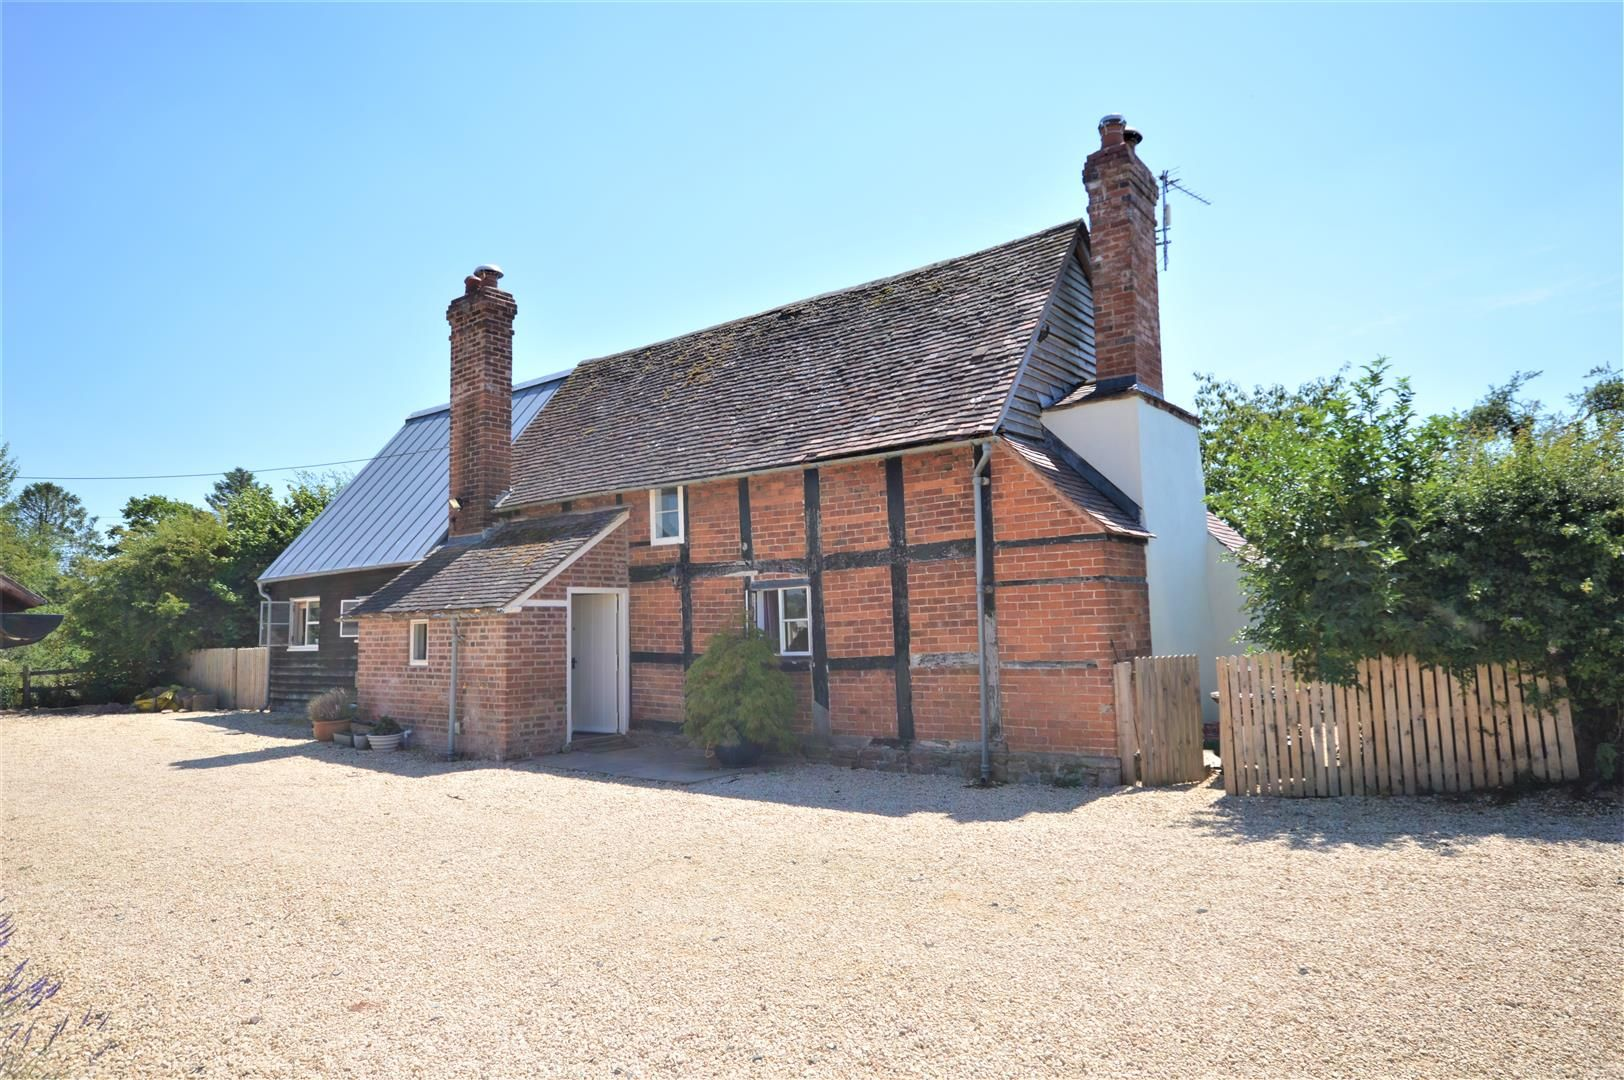 3 bed detached for sale in Canon Frome  - Property Image 5